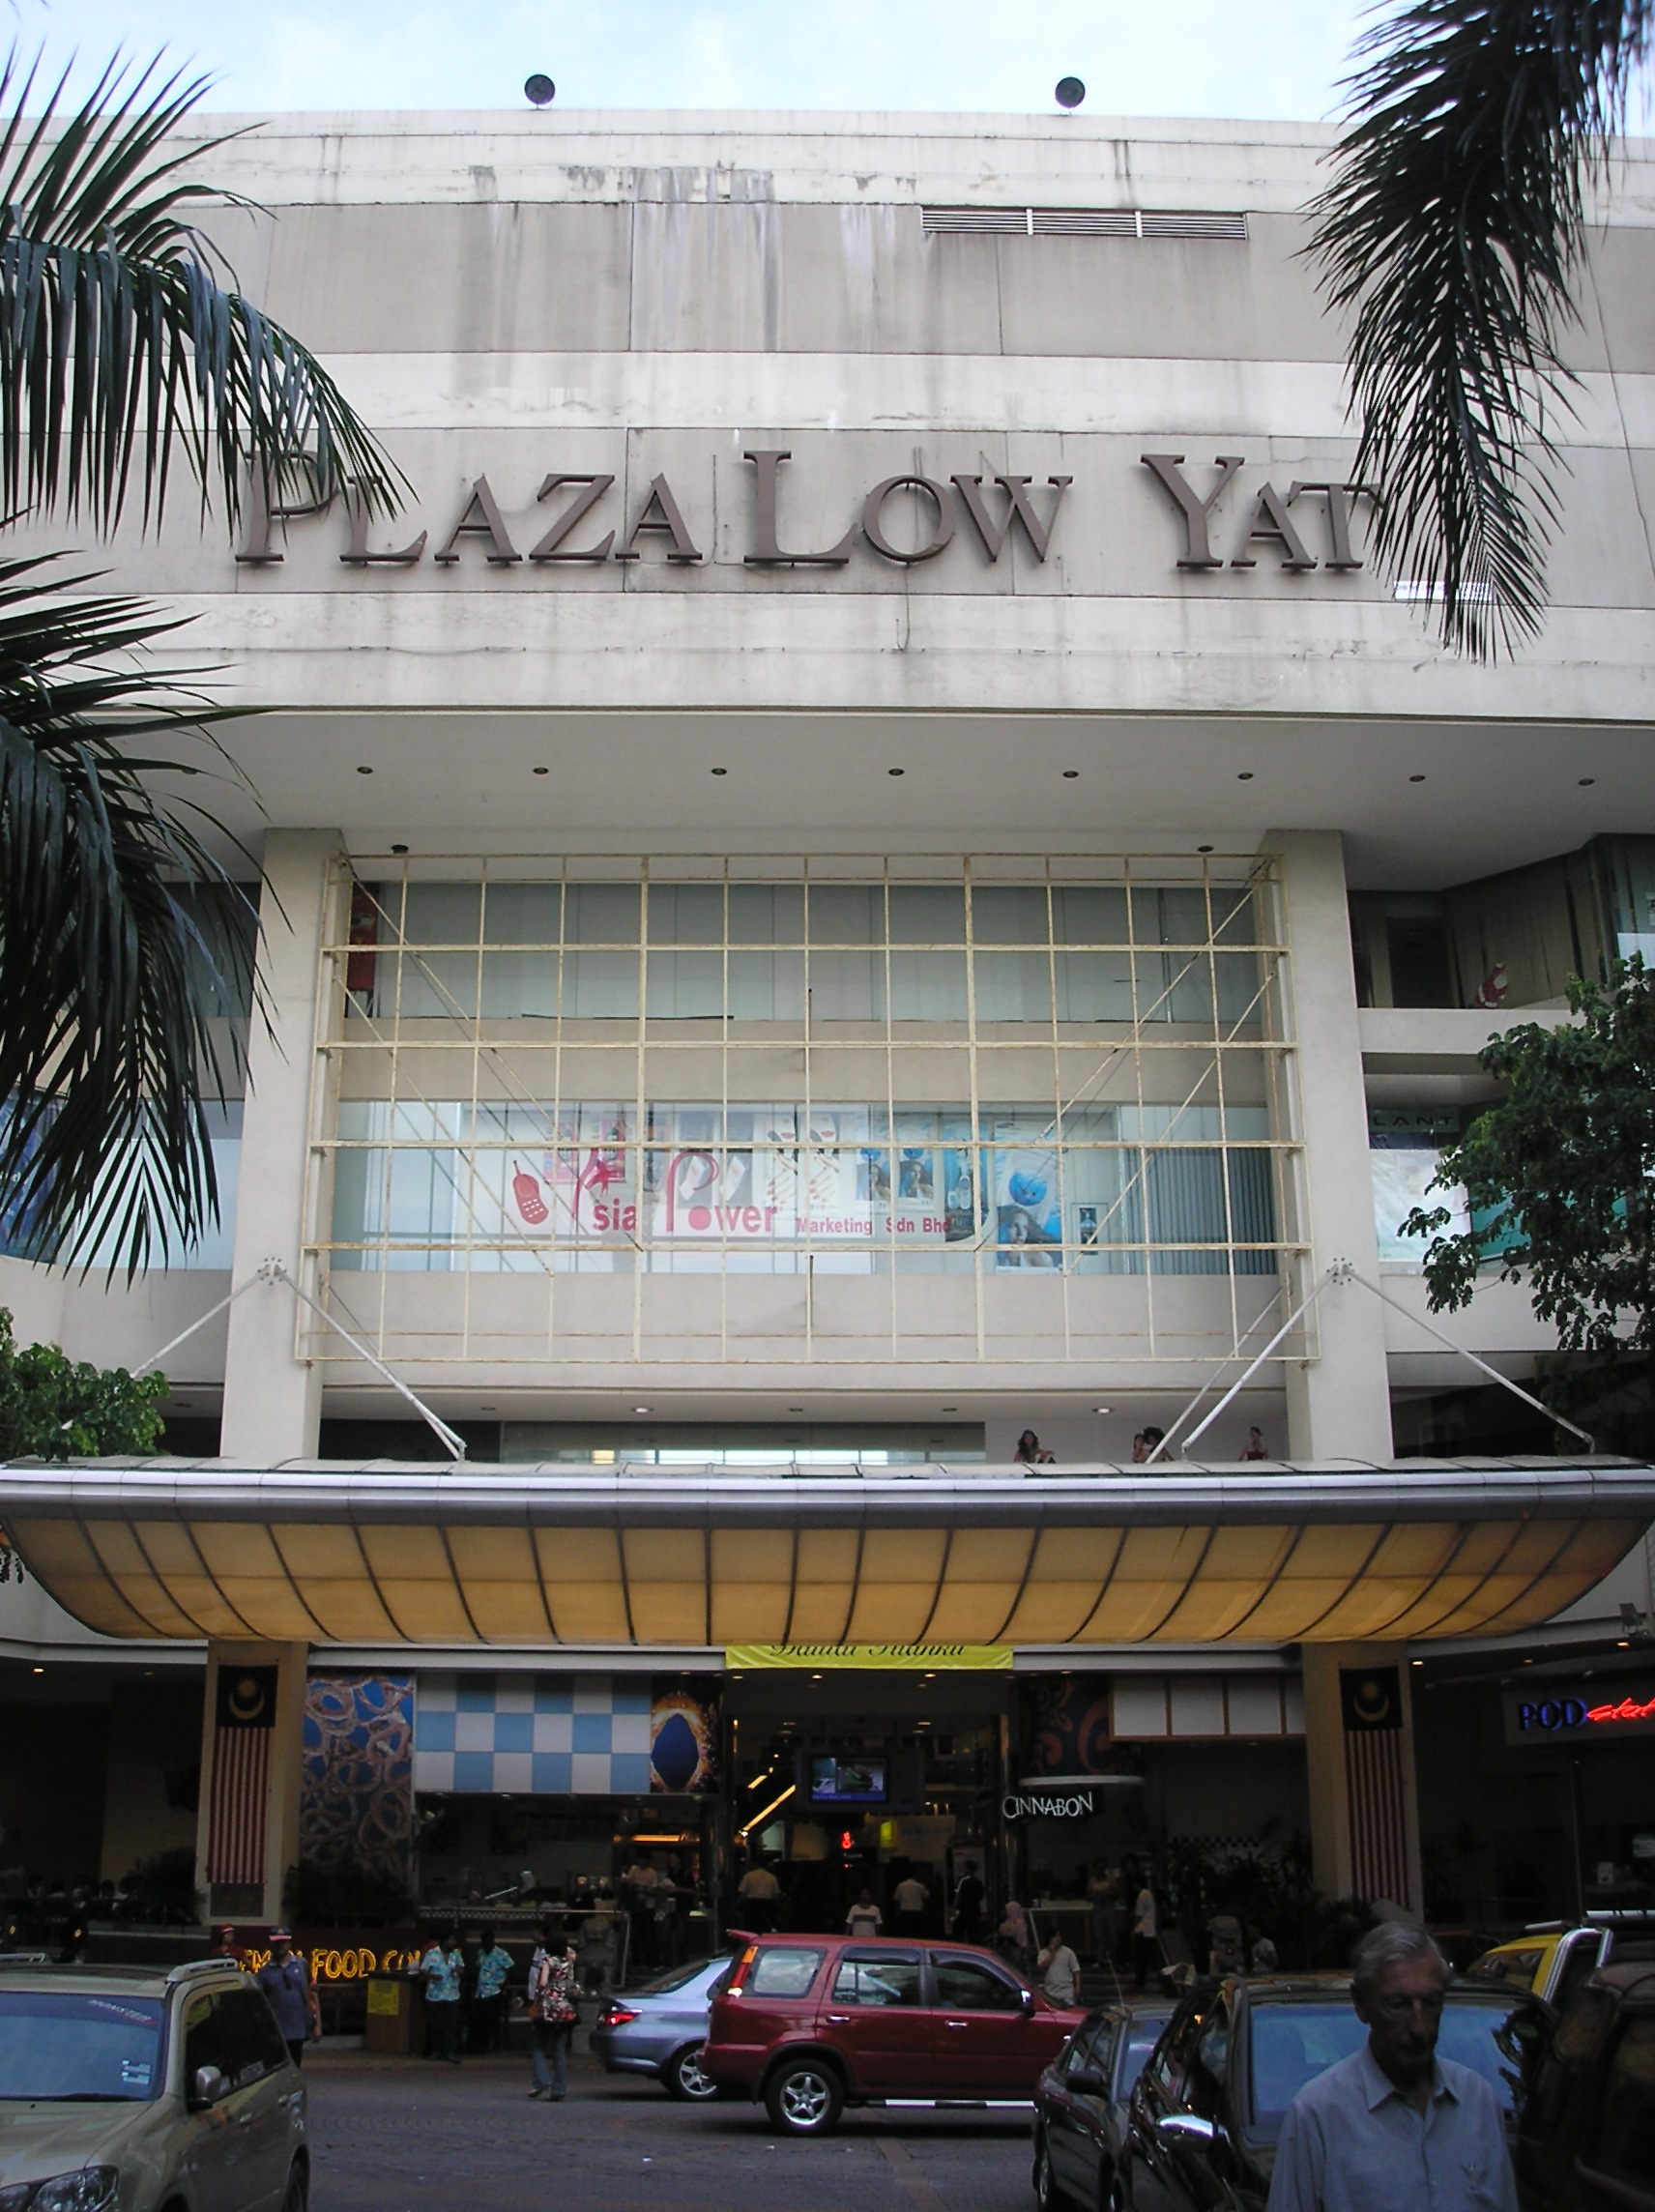 low yat Putrajaya: a youth who was charged with stealing a rm800 smartphone at low yat plaza three years ago was today acquitted of the offence on technical groun.